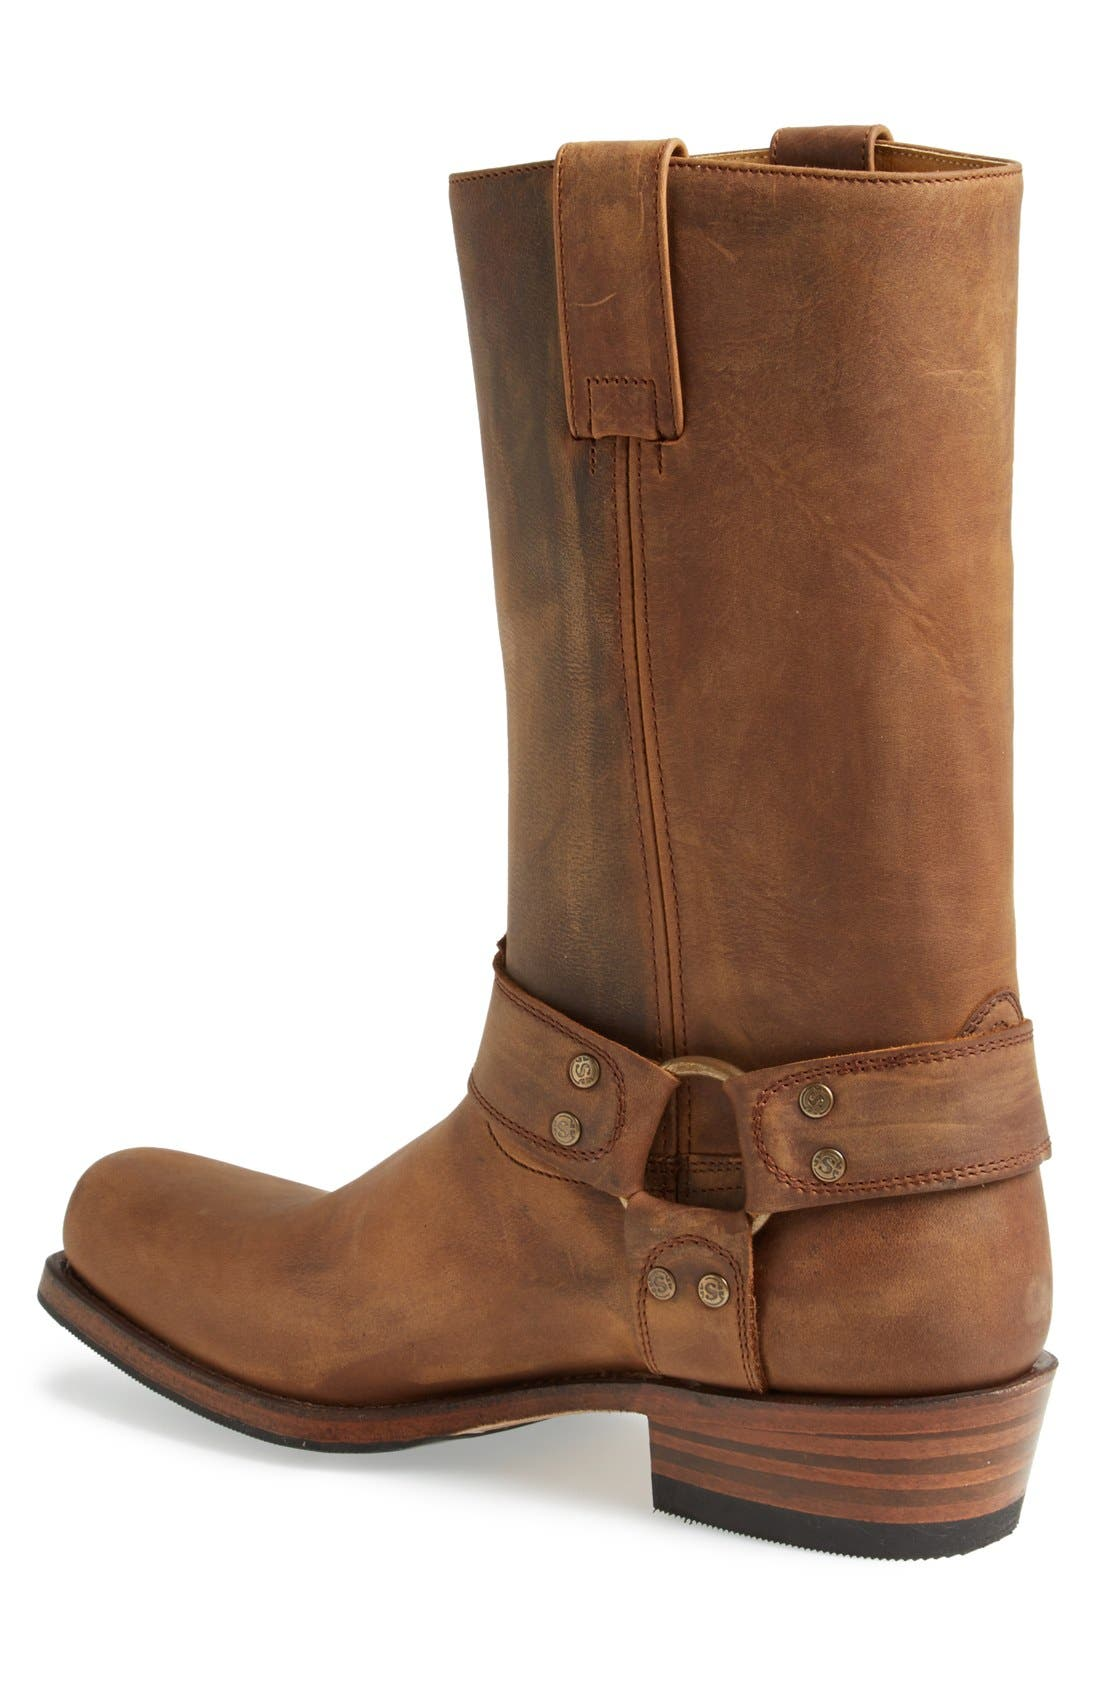 Boots Tall Harness Boot,                             Alternate thumbnail 6, color,                             TAN